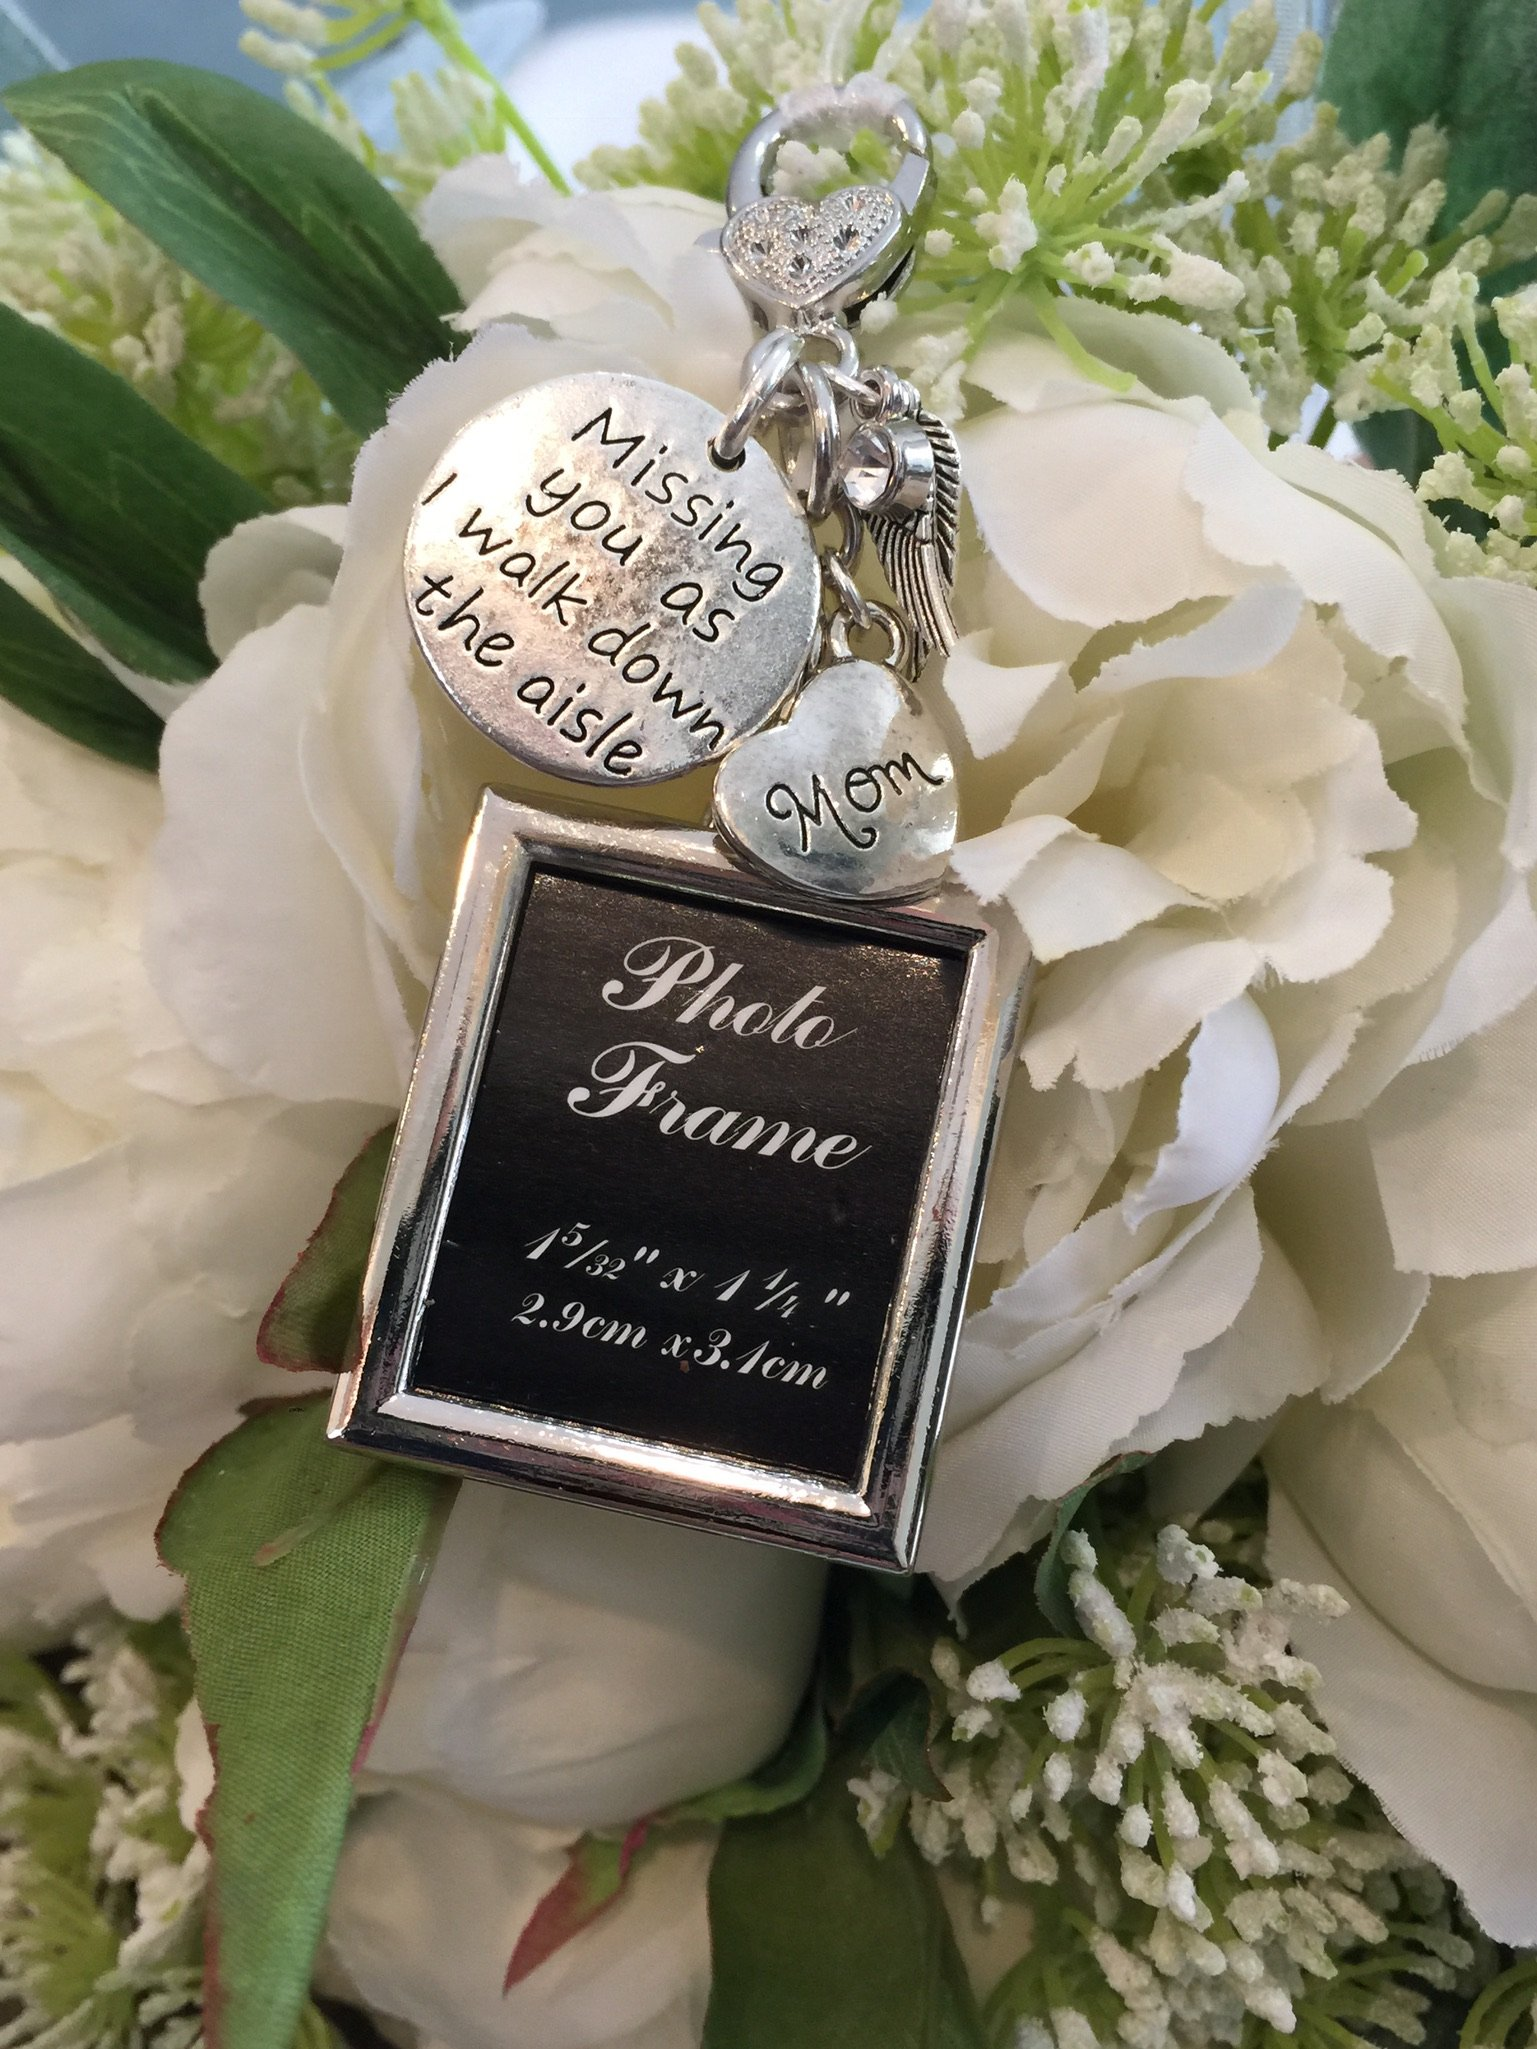 Harper Olivia Bridal Bouquet Photo Charm Missing You As I Walk Down